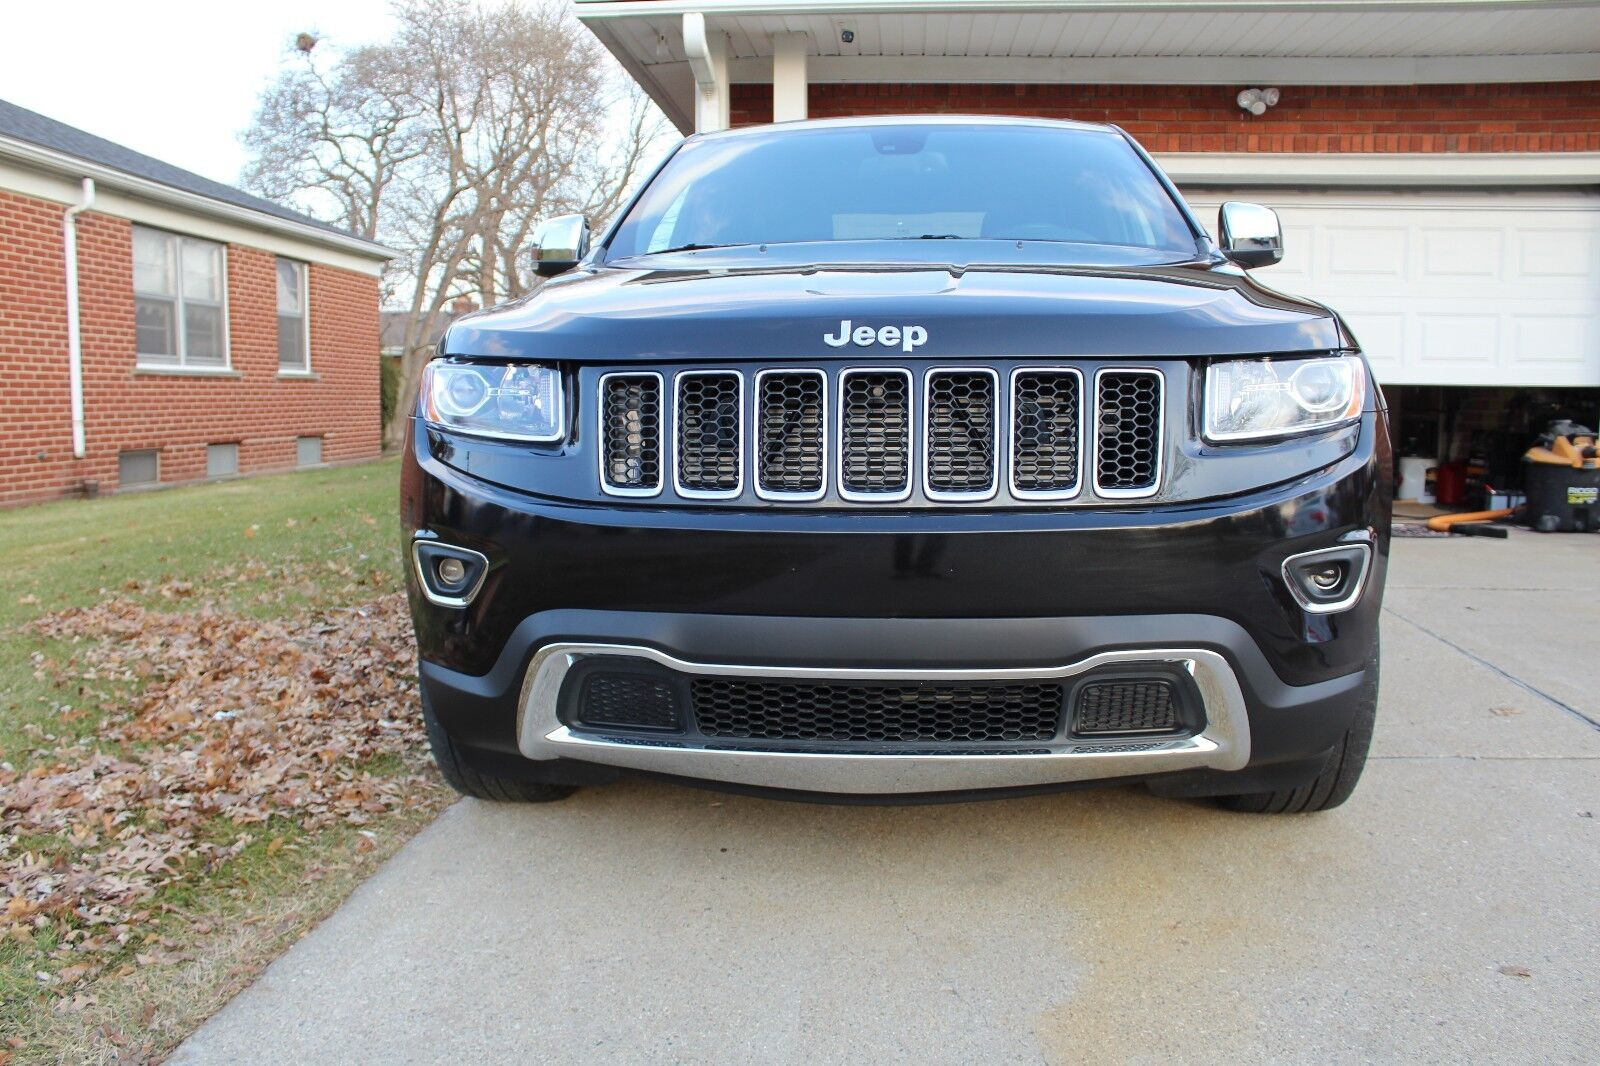 2014 JEEP GRAND CHEROKEE LIMITED 4X4 5.7L HEMI 45000 MILE